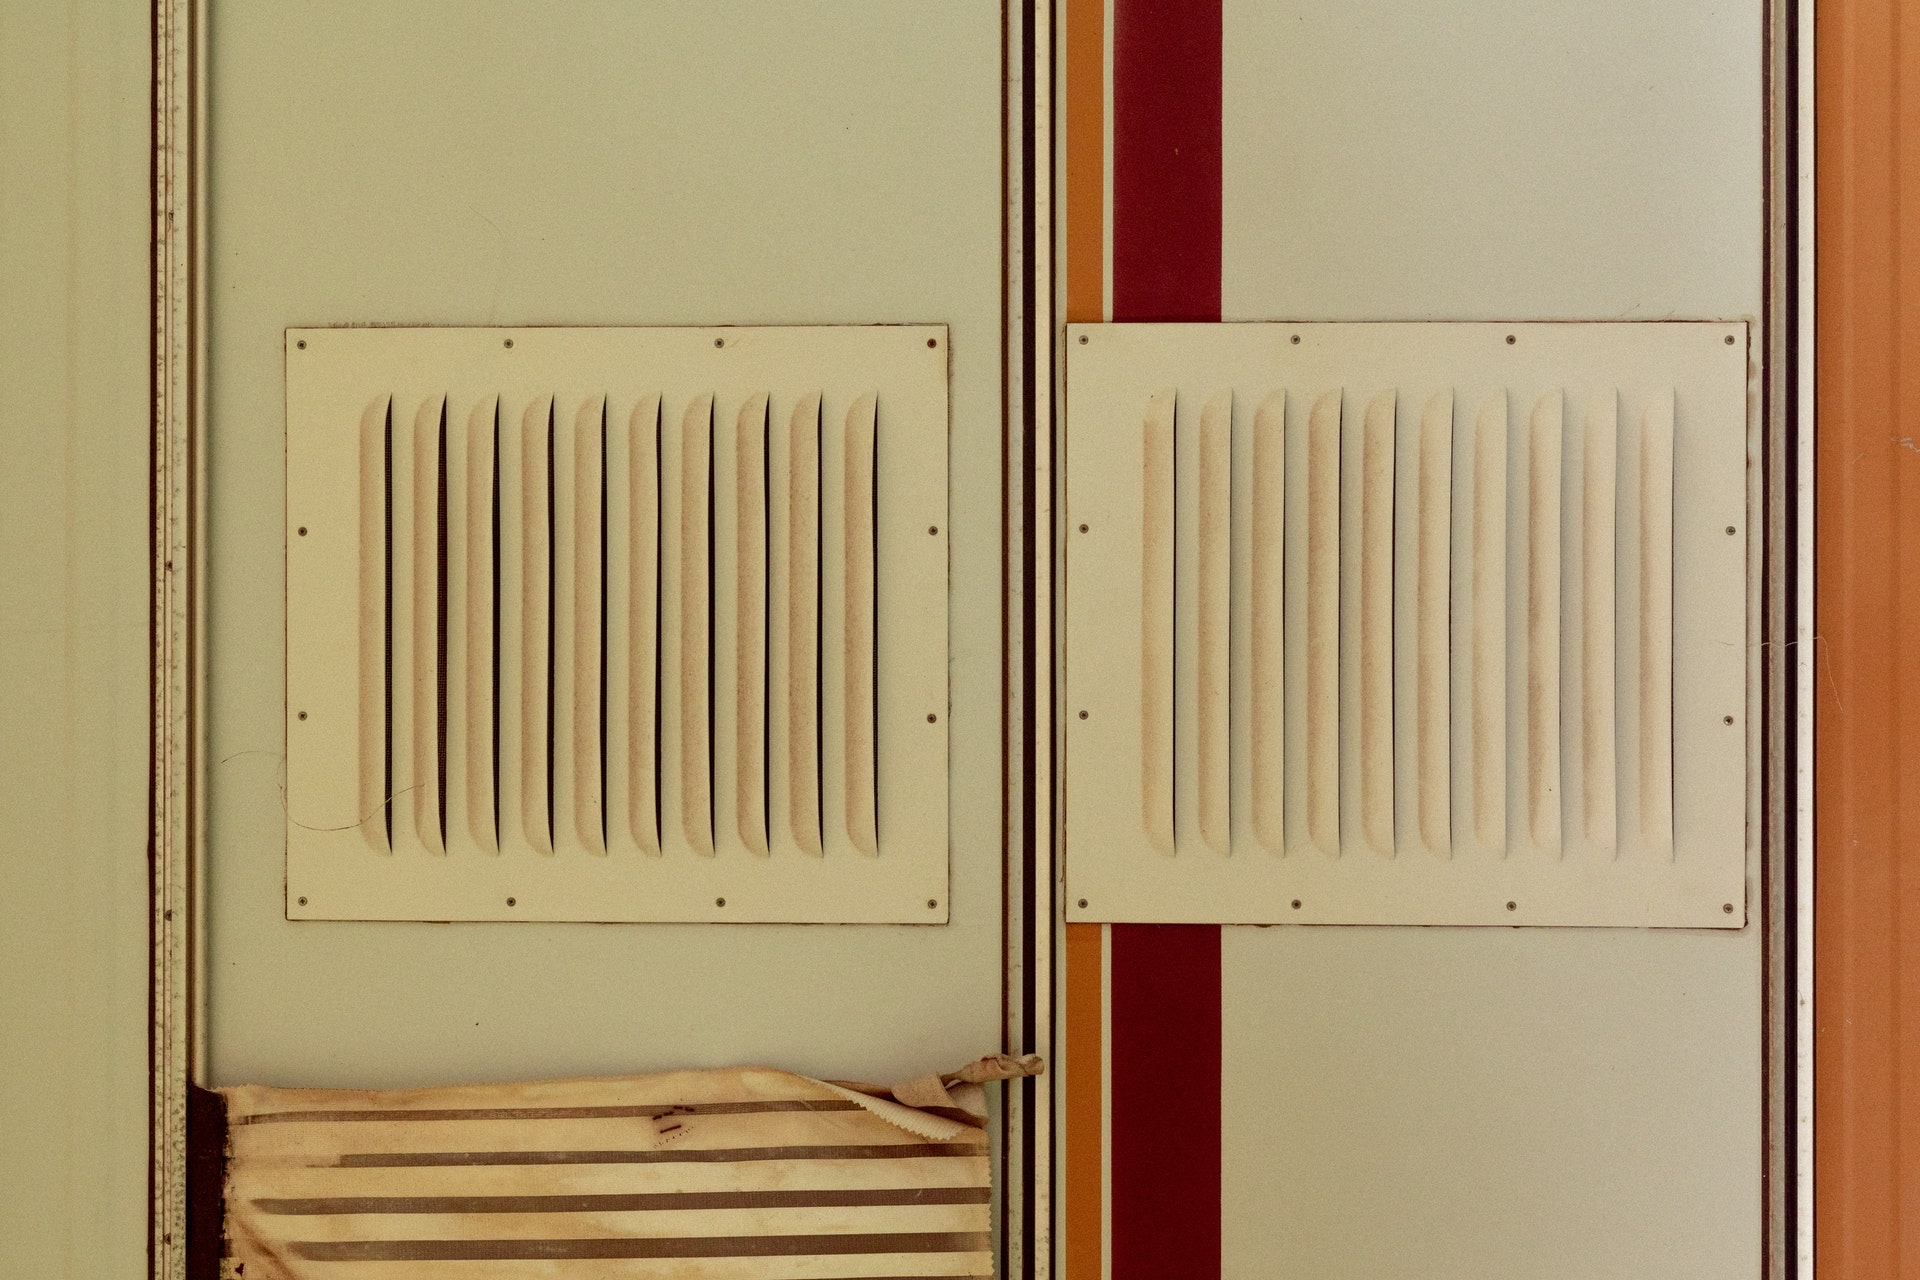 Two vents on a striped wall